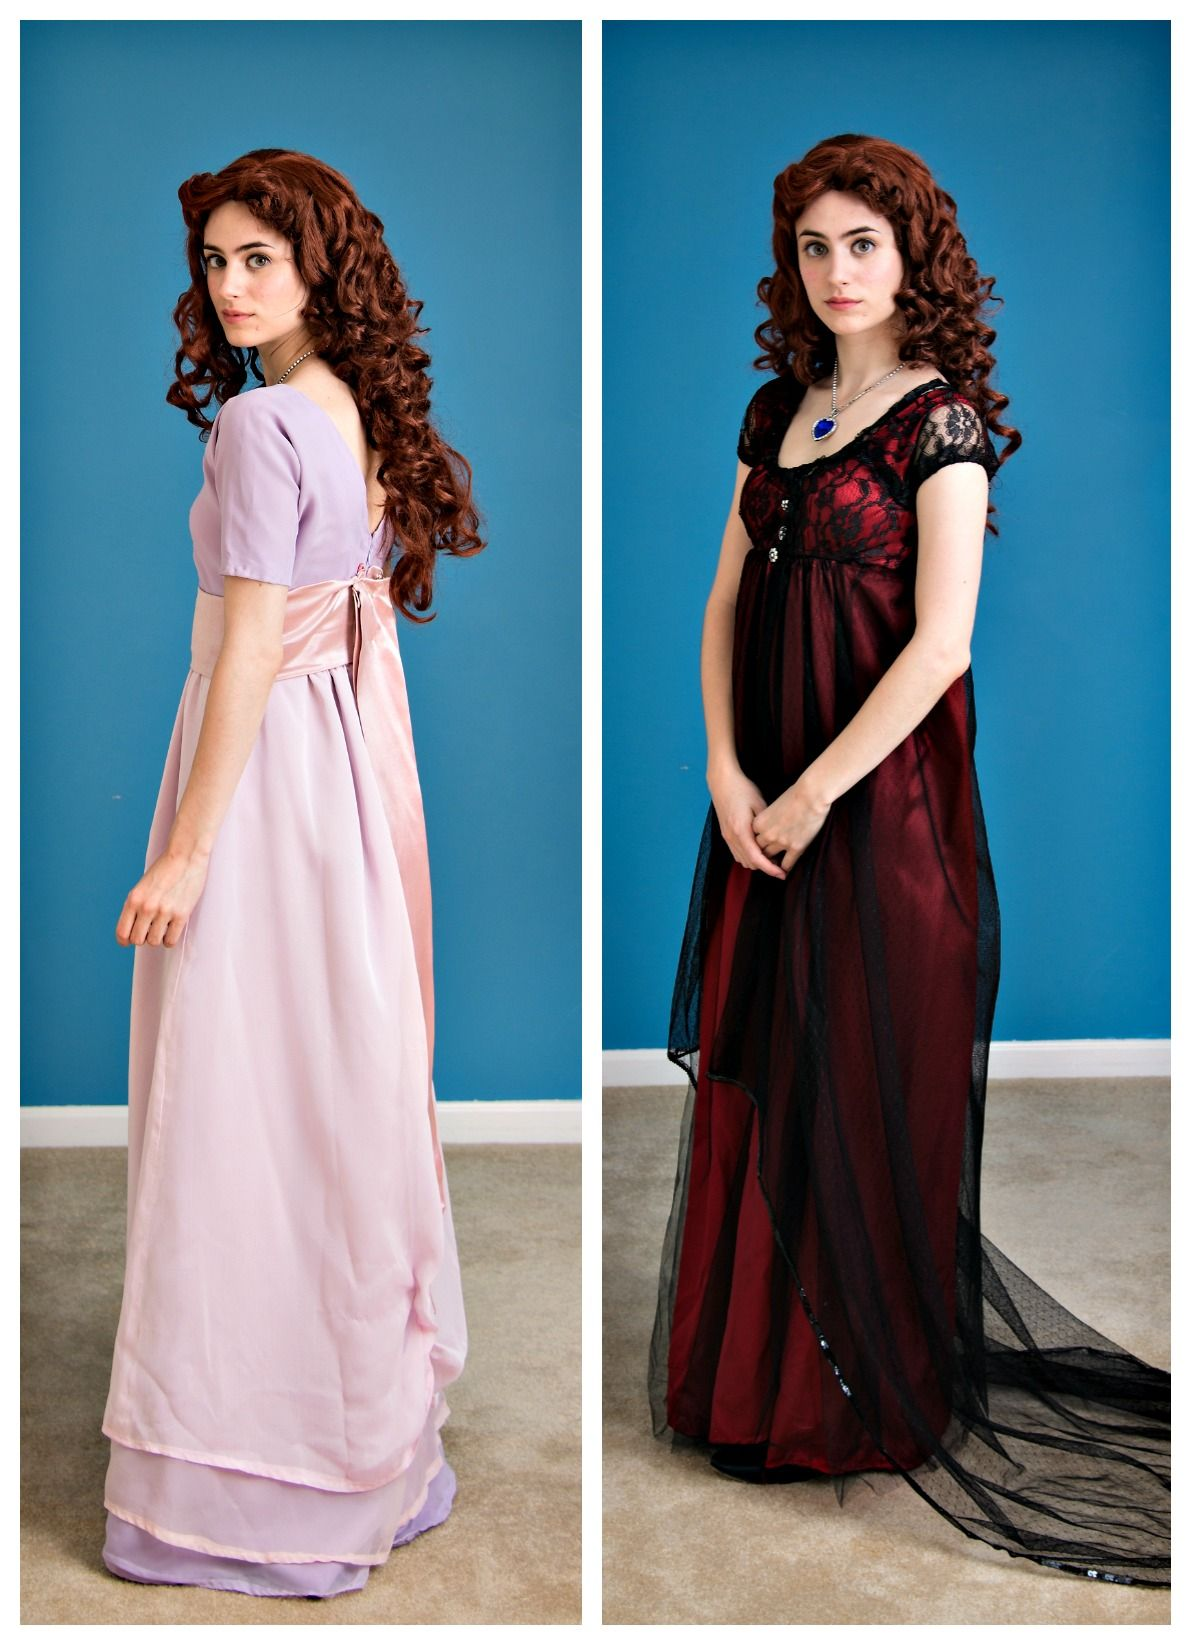 Titanic And Iceberg Costume Sayers Alethea By You For Made Custom